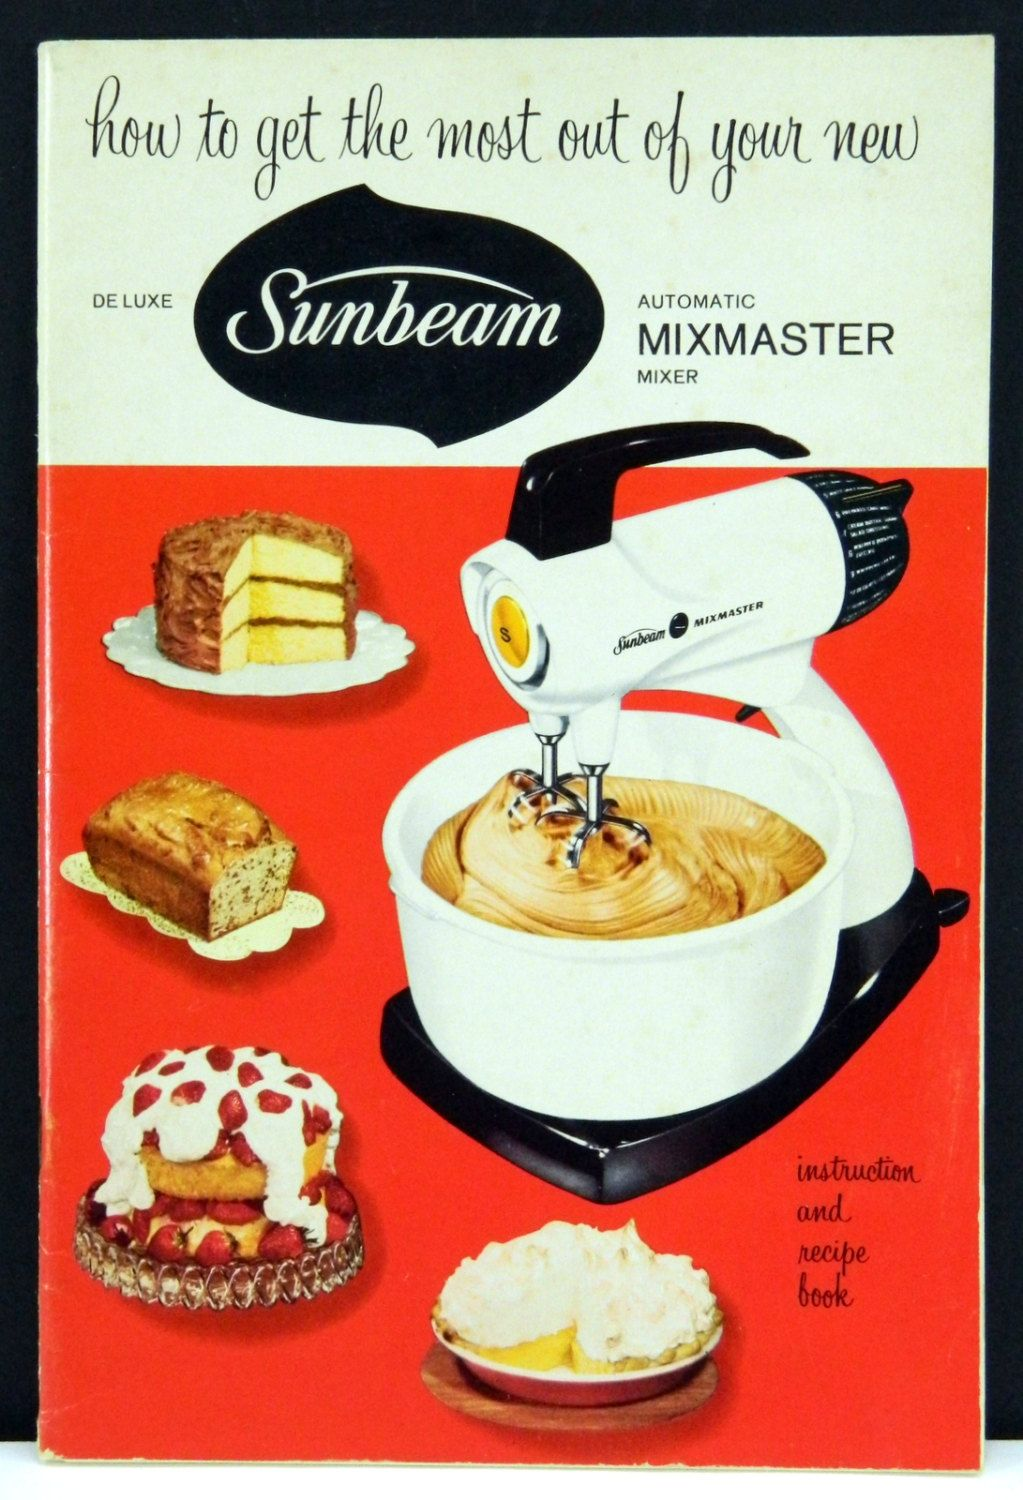 How To Get The Most Out Of Your New Sunbeam Mixmaster Mixer 1957 Manual  Recipes 15736